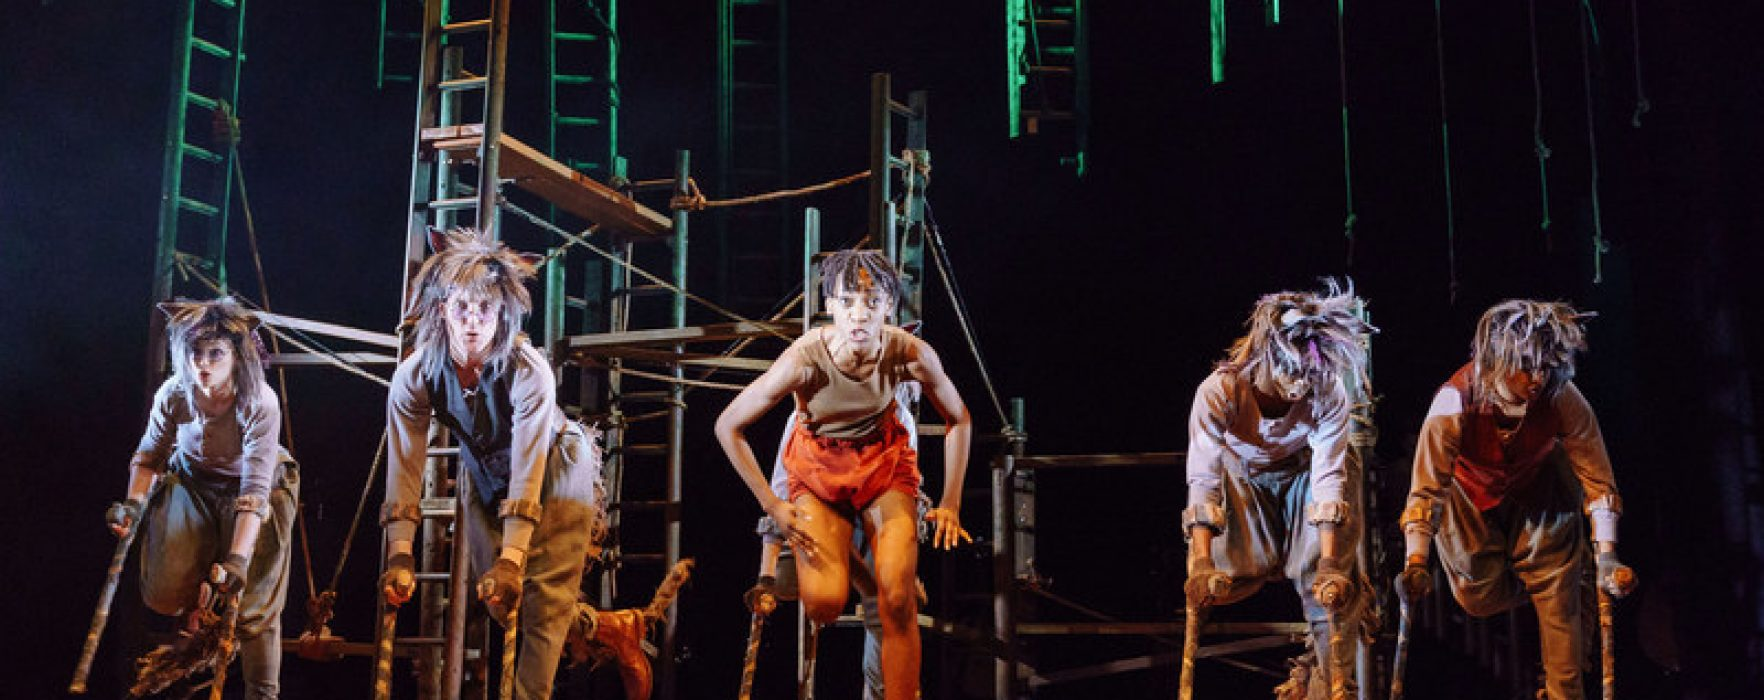 The Jungle Book at The Lowry: A Playful Take on Kipling's Classic